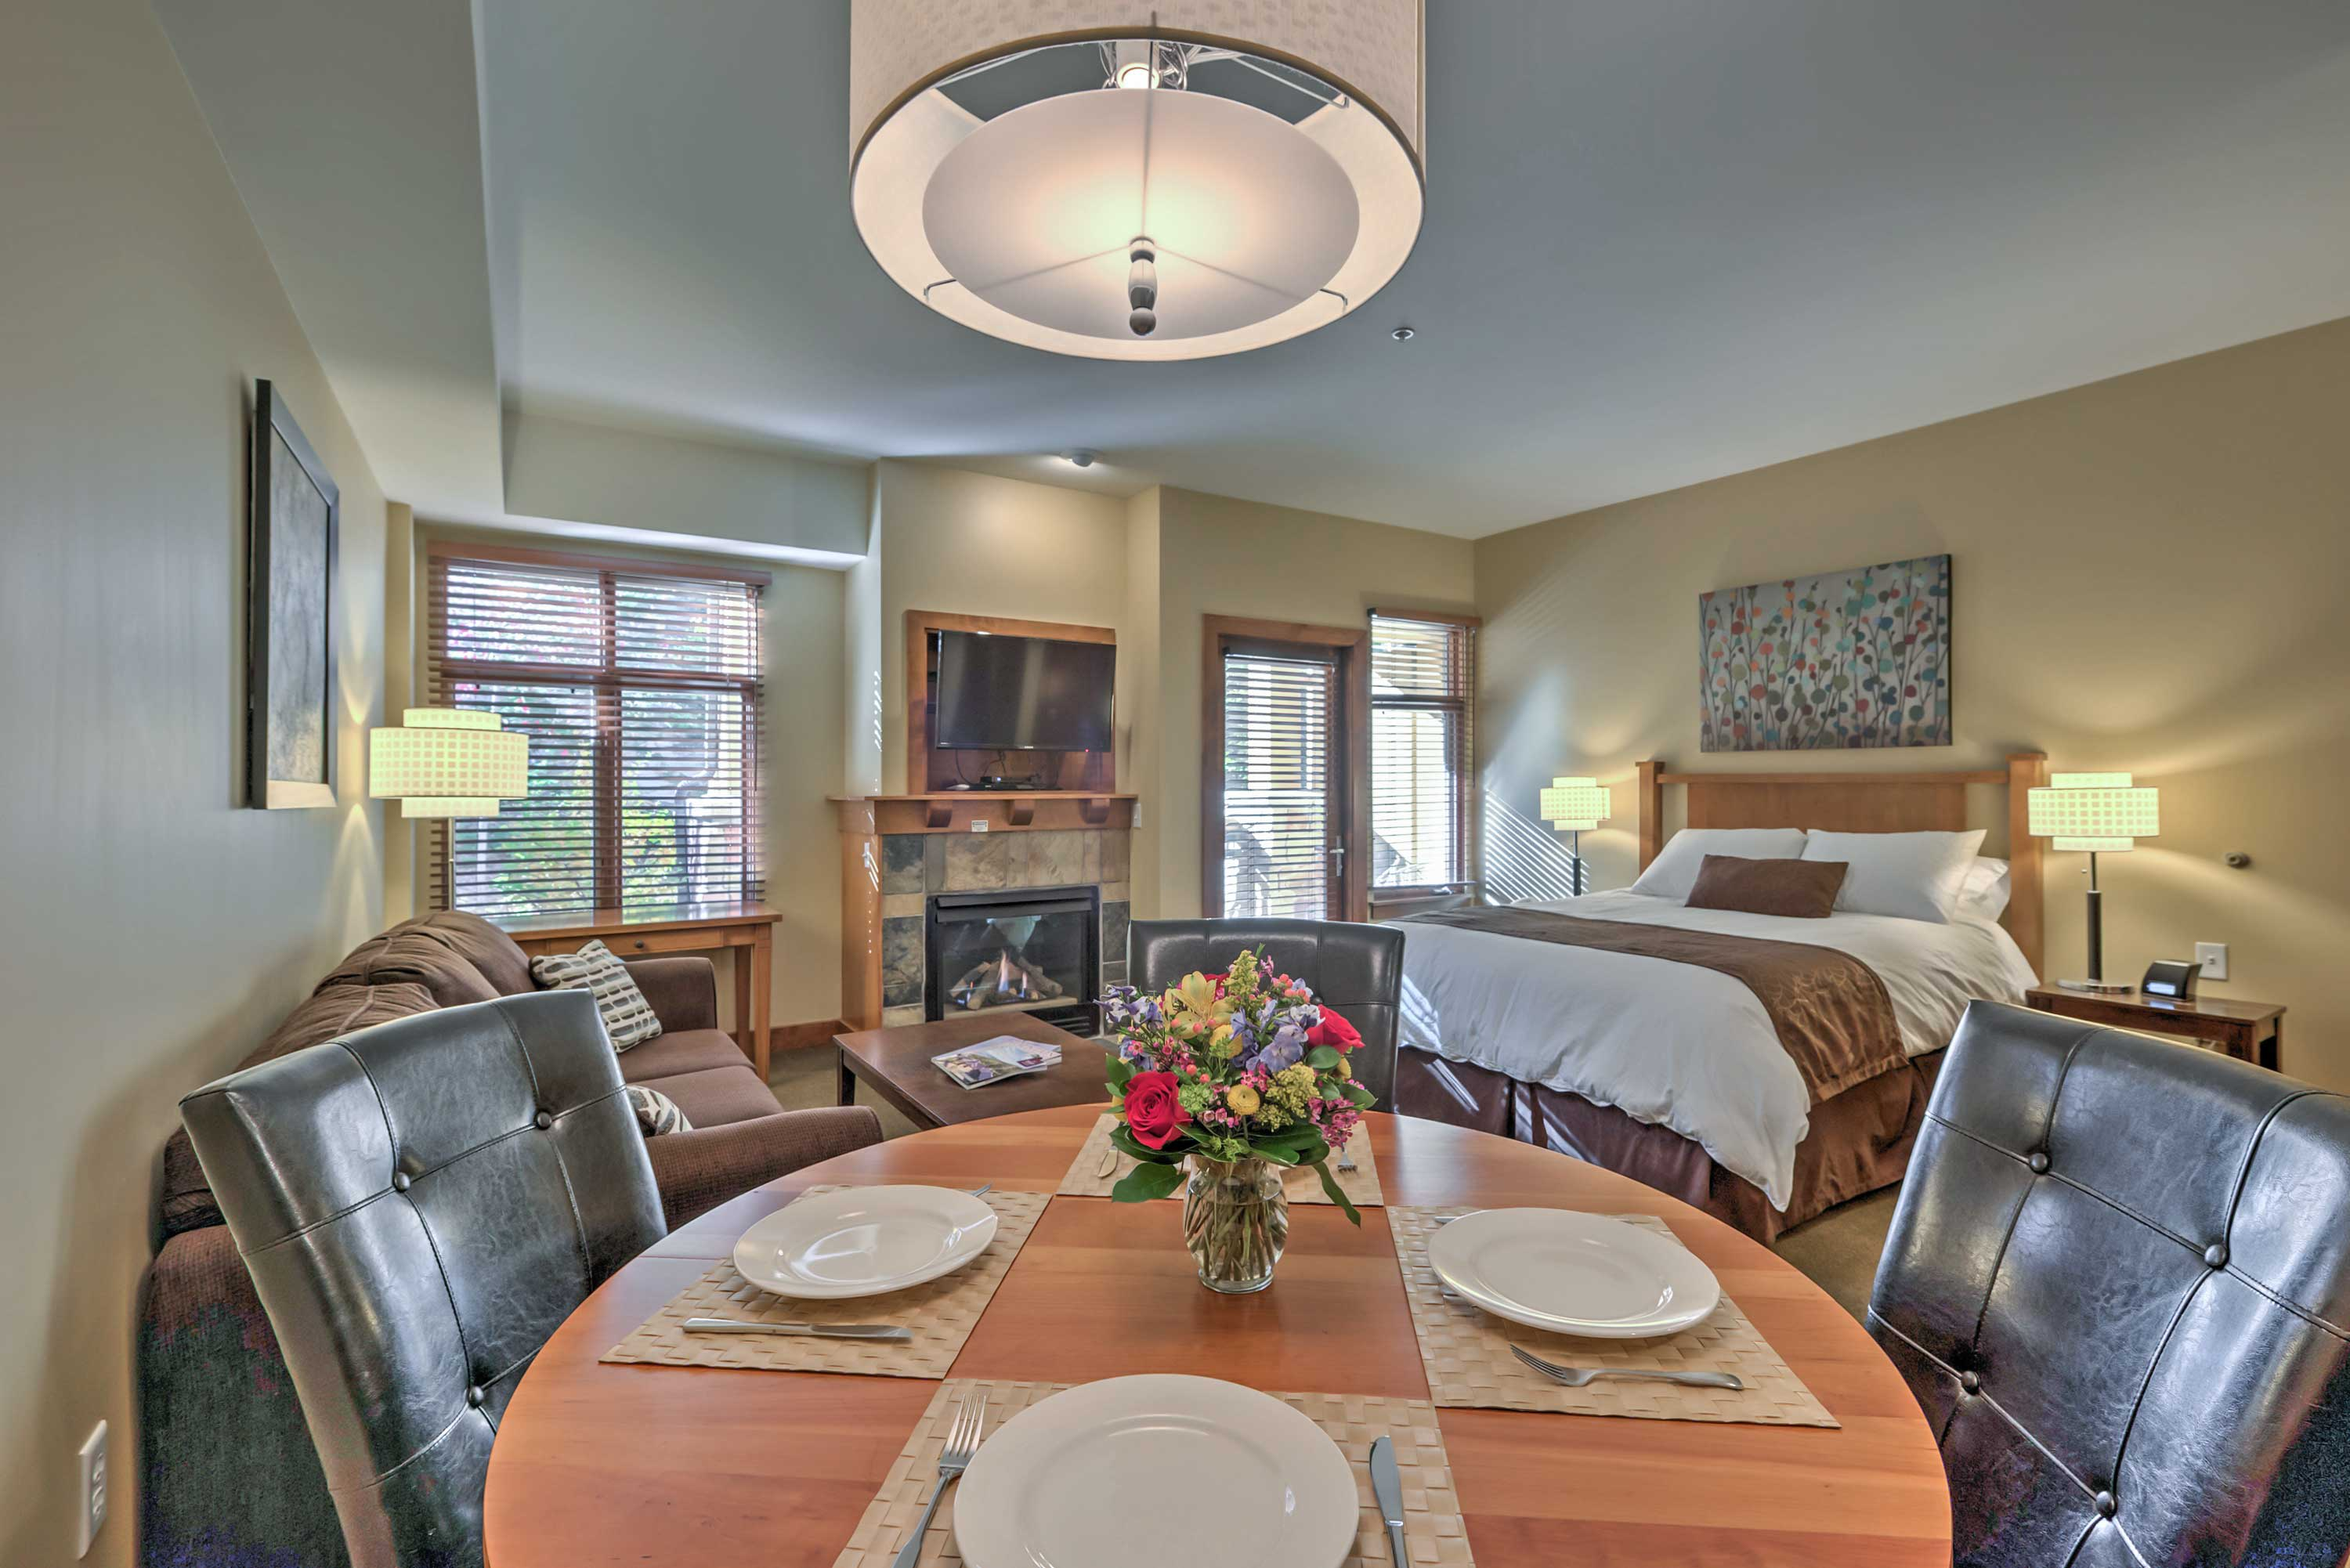 Enjoy home-cooked meals around this spacious dining table for 4!